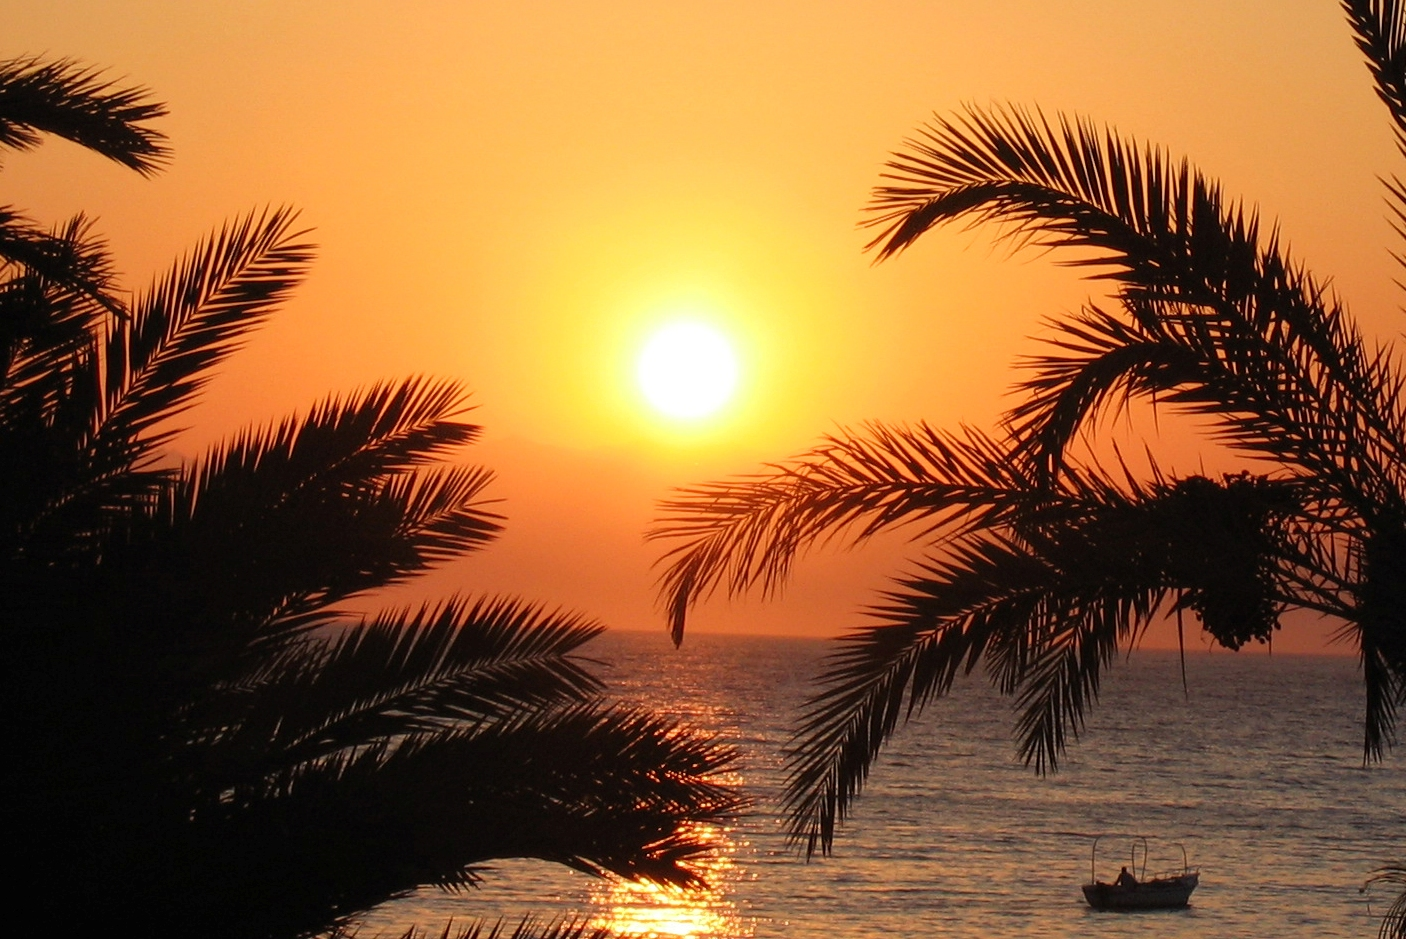 Dahab_Red Sea_Egypt_Sinai_Sunset - Kopi.JPG